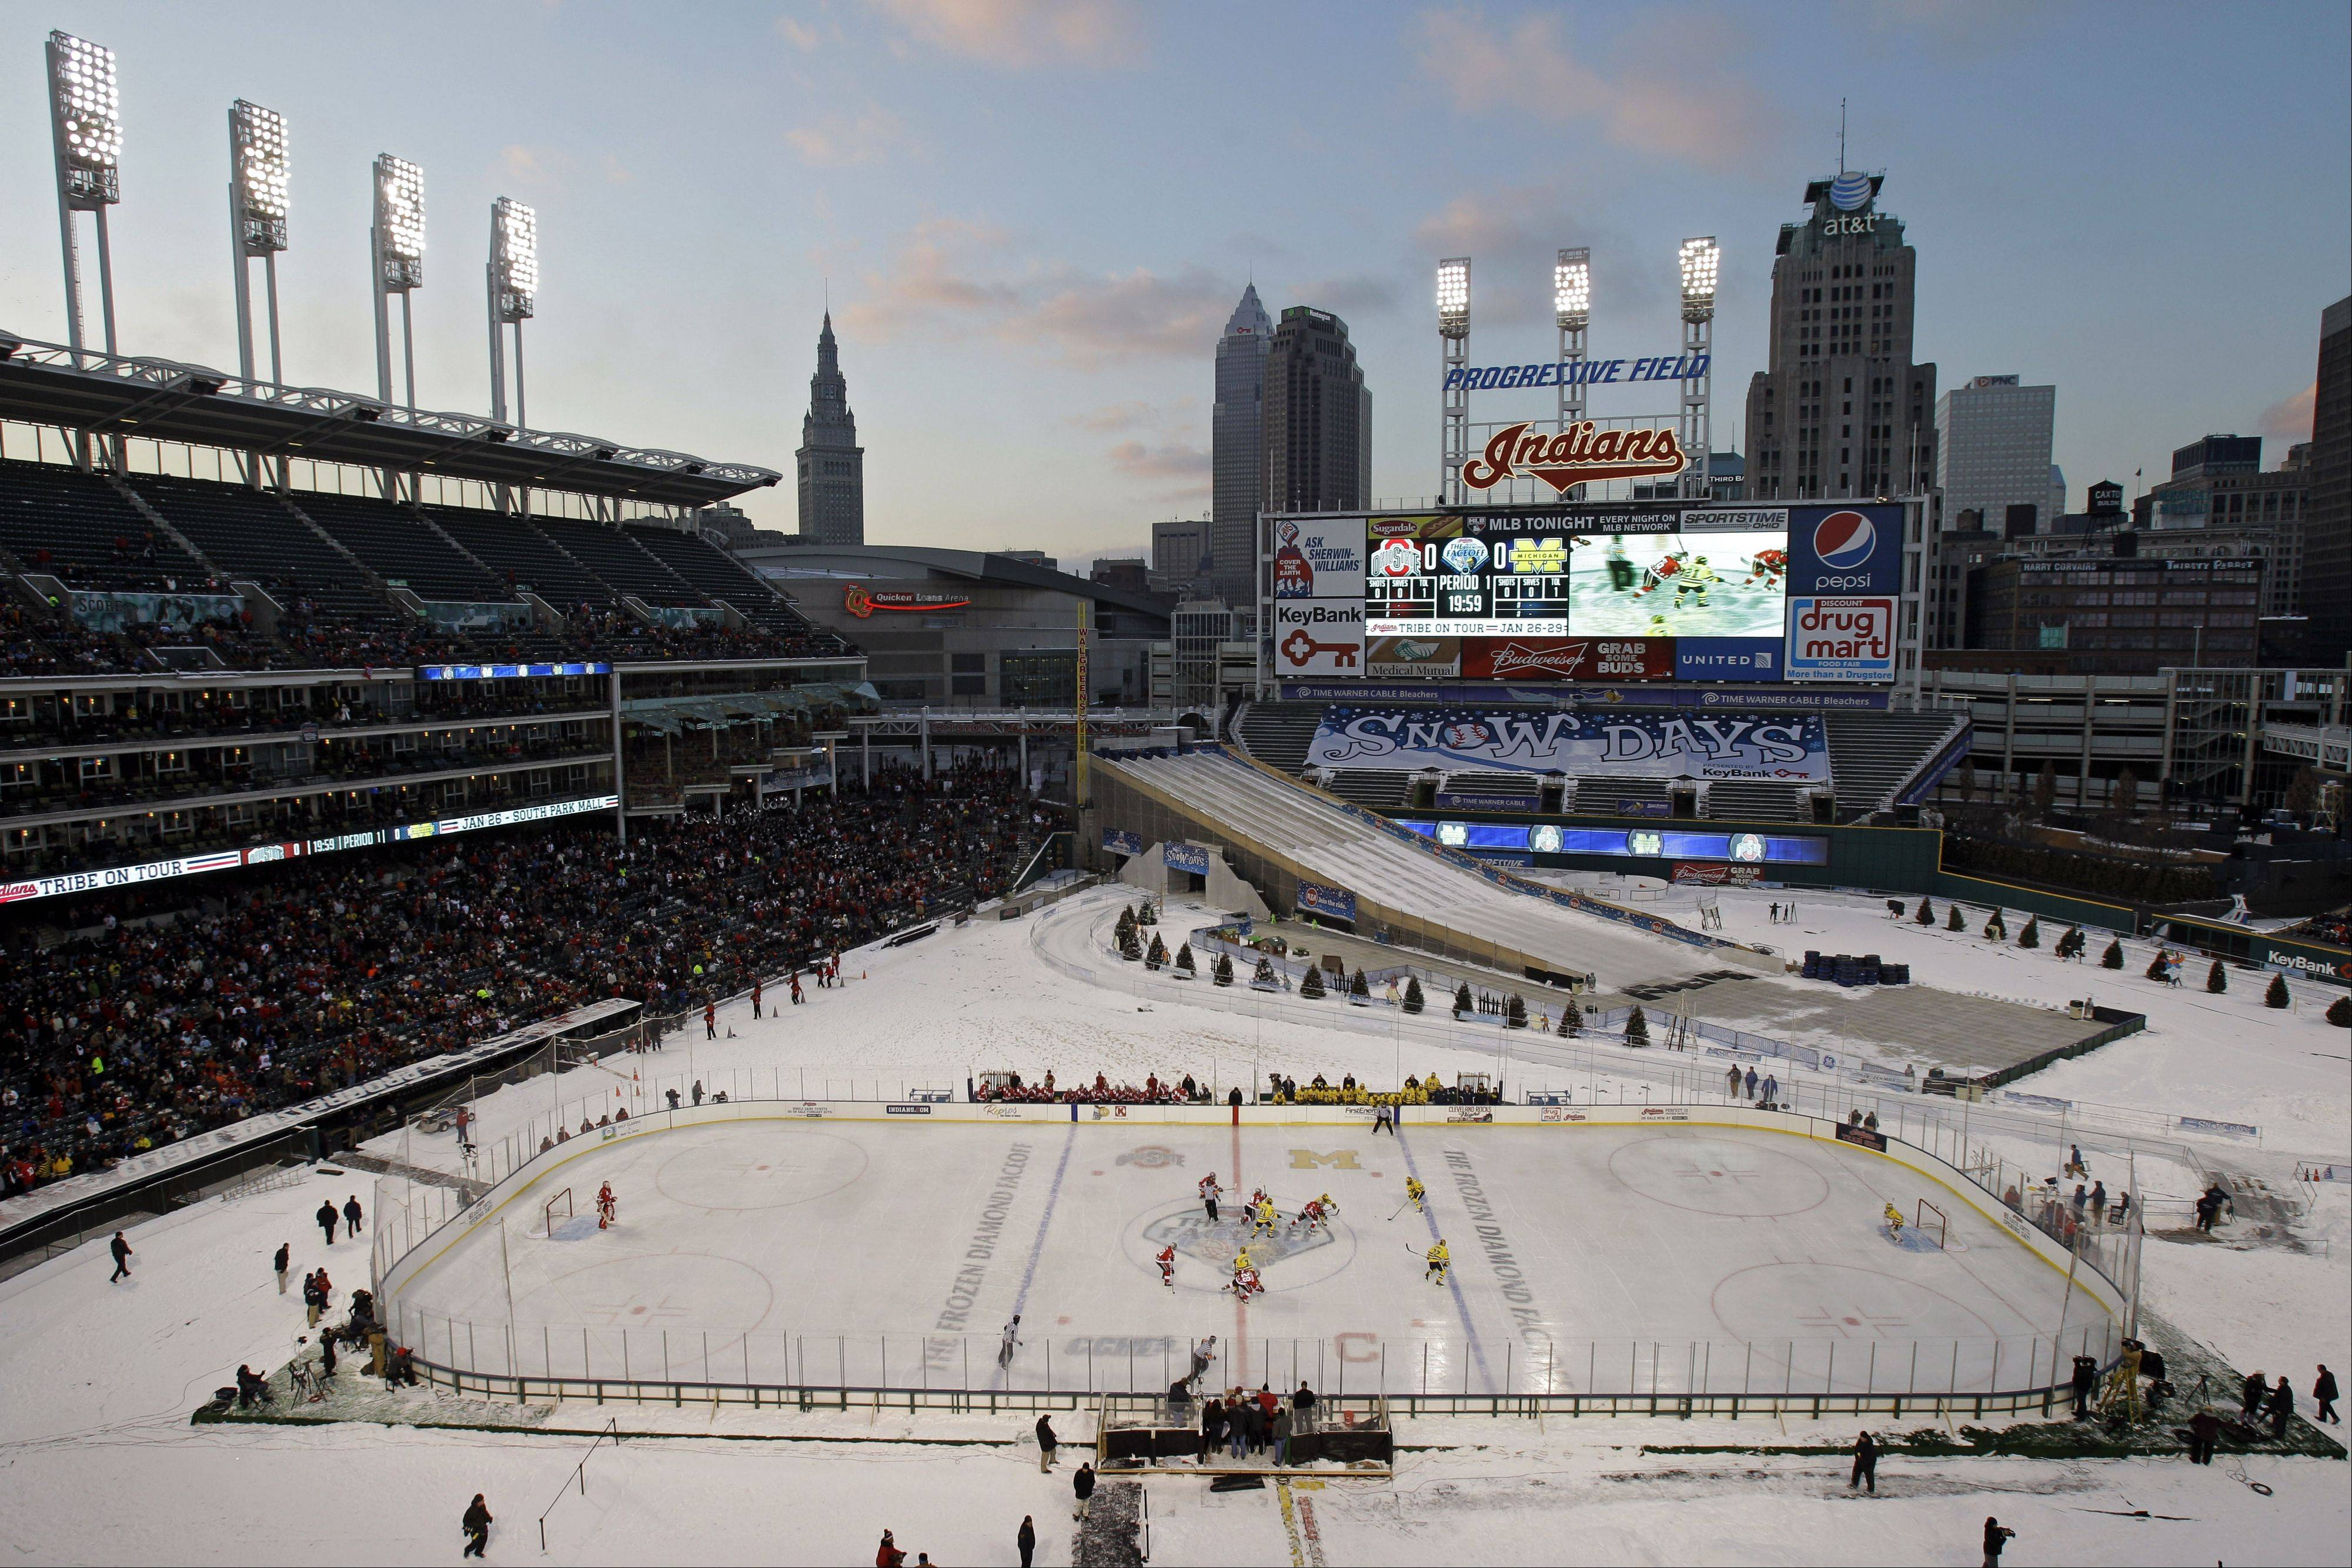 Soldier Field to host college hockey doubleheader